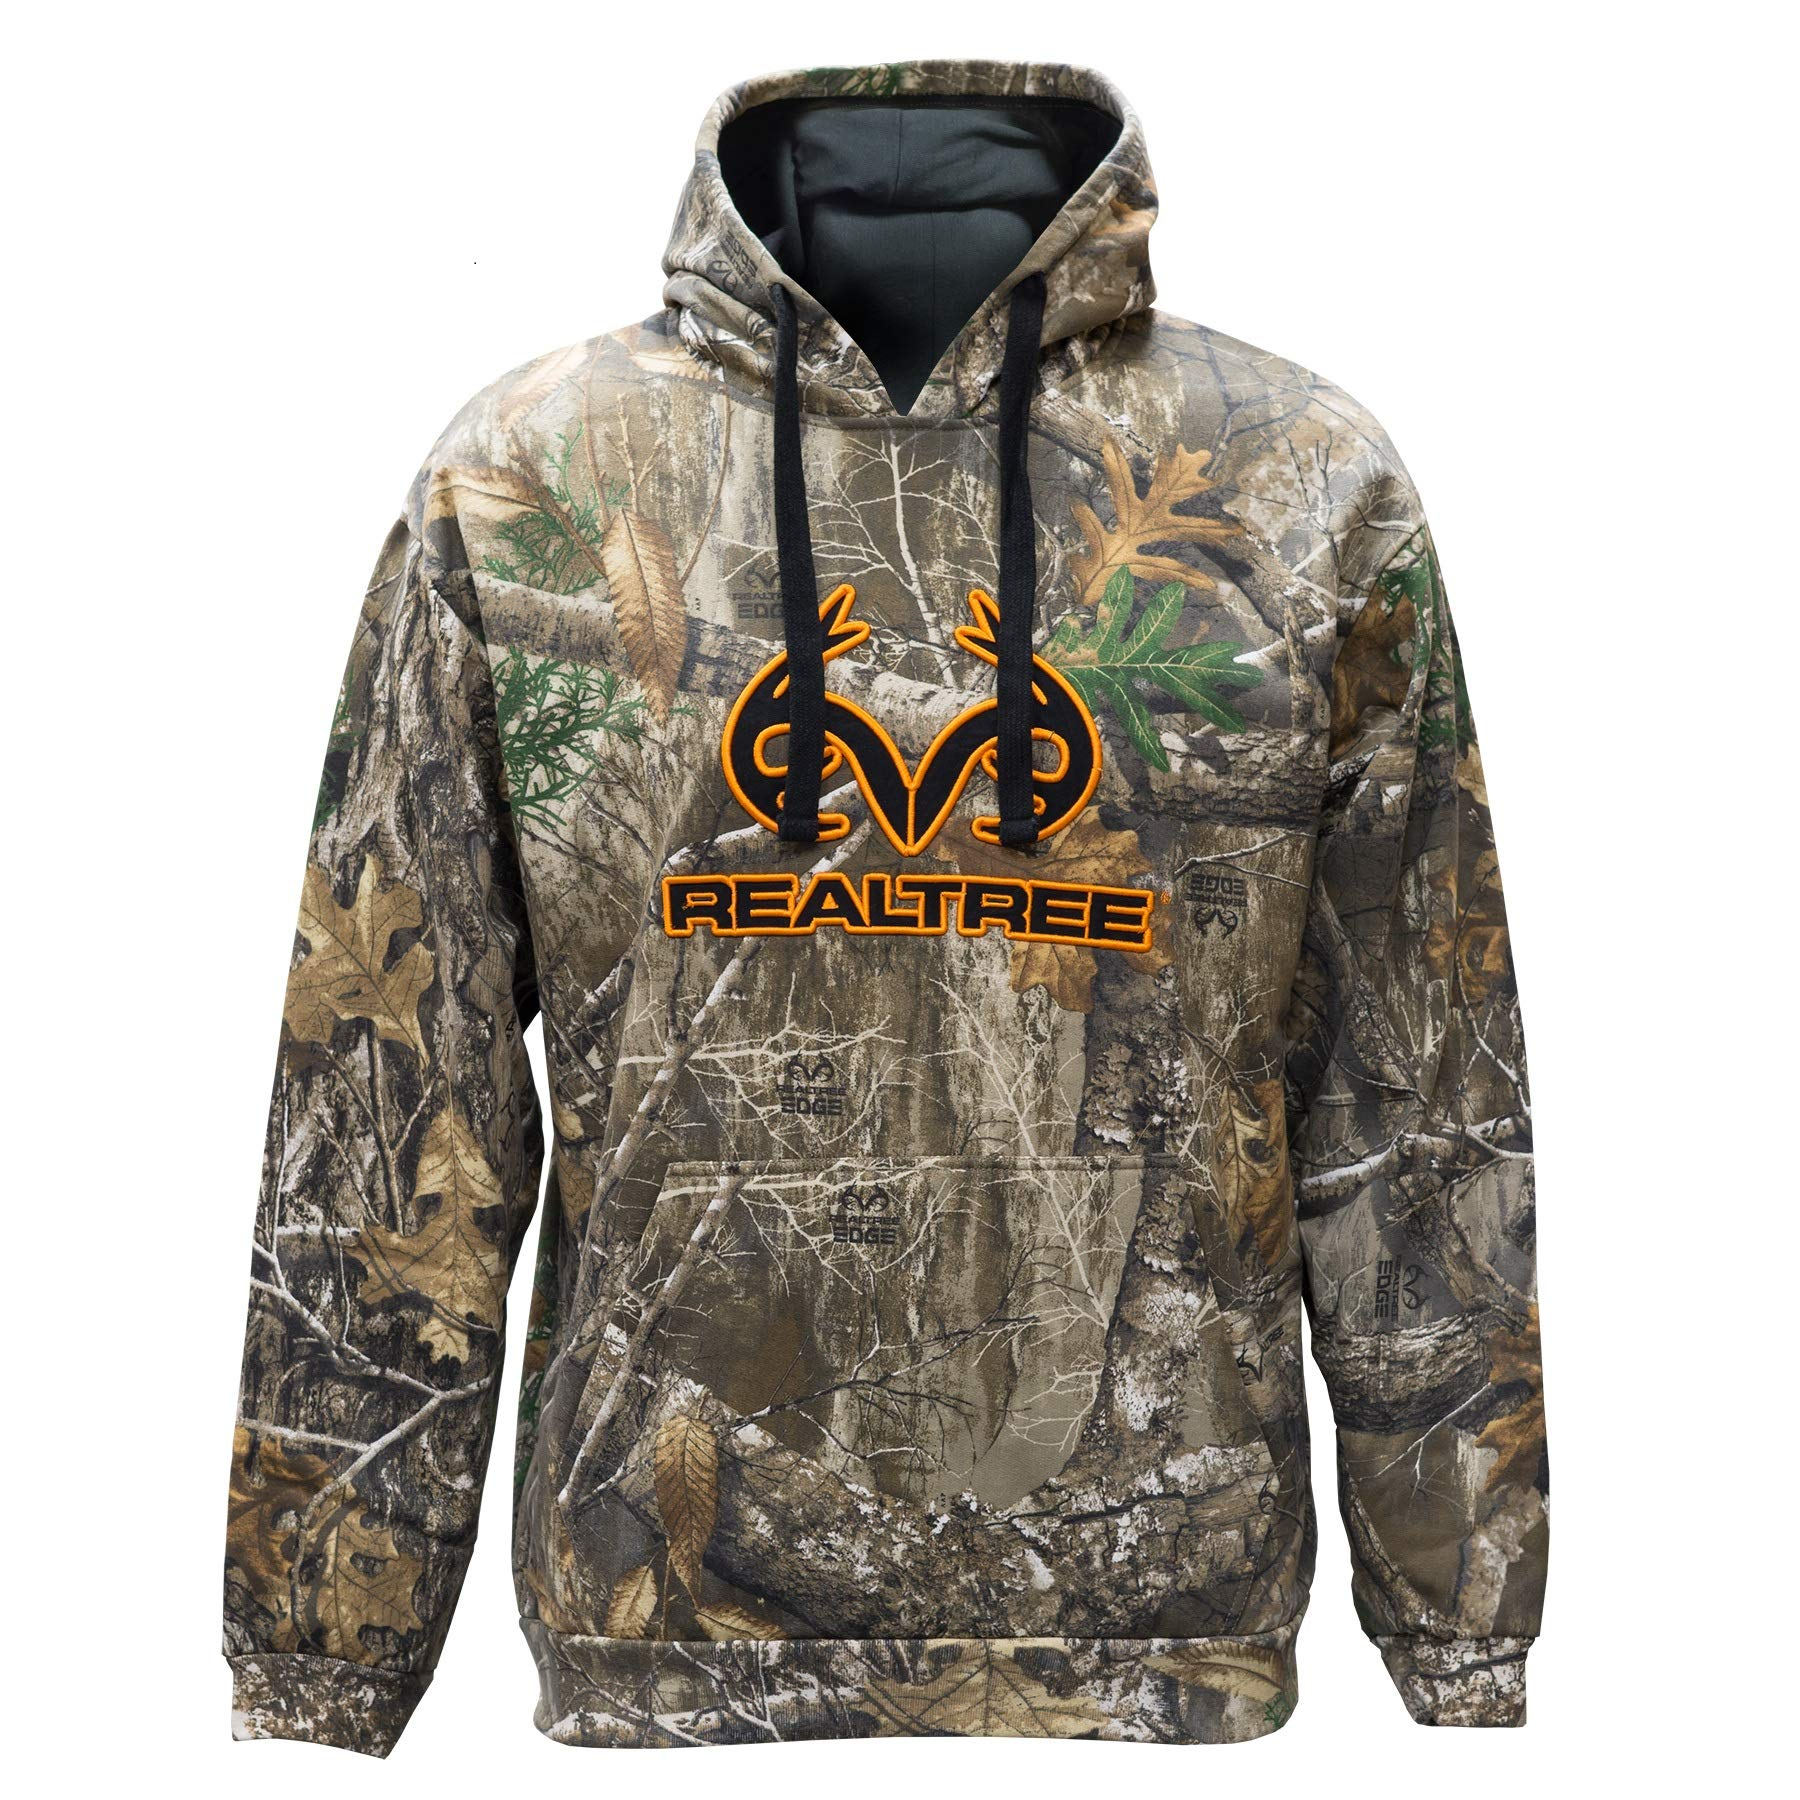 Staghorn Realtree Men's Camo Applique Hoodie, Edge, Small